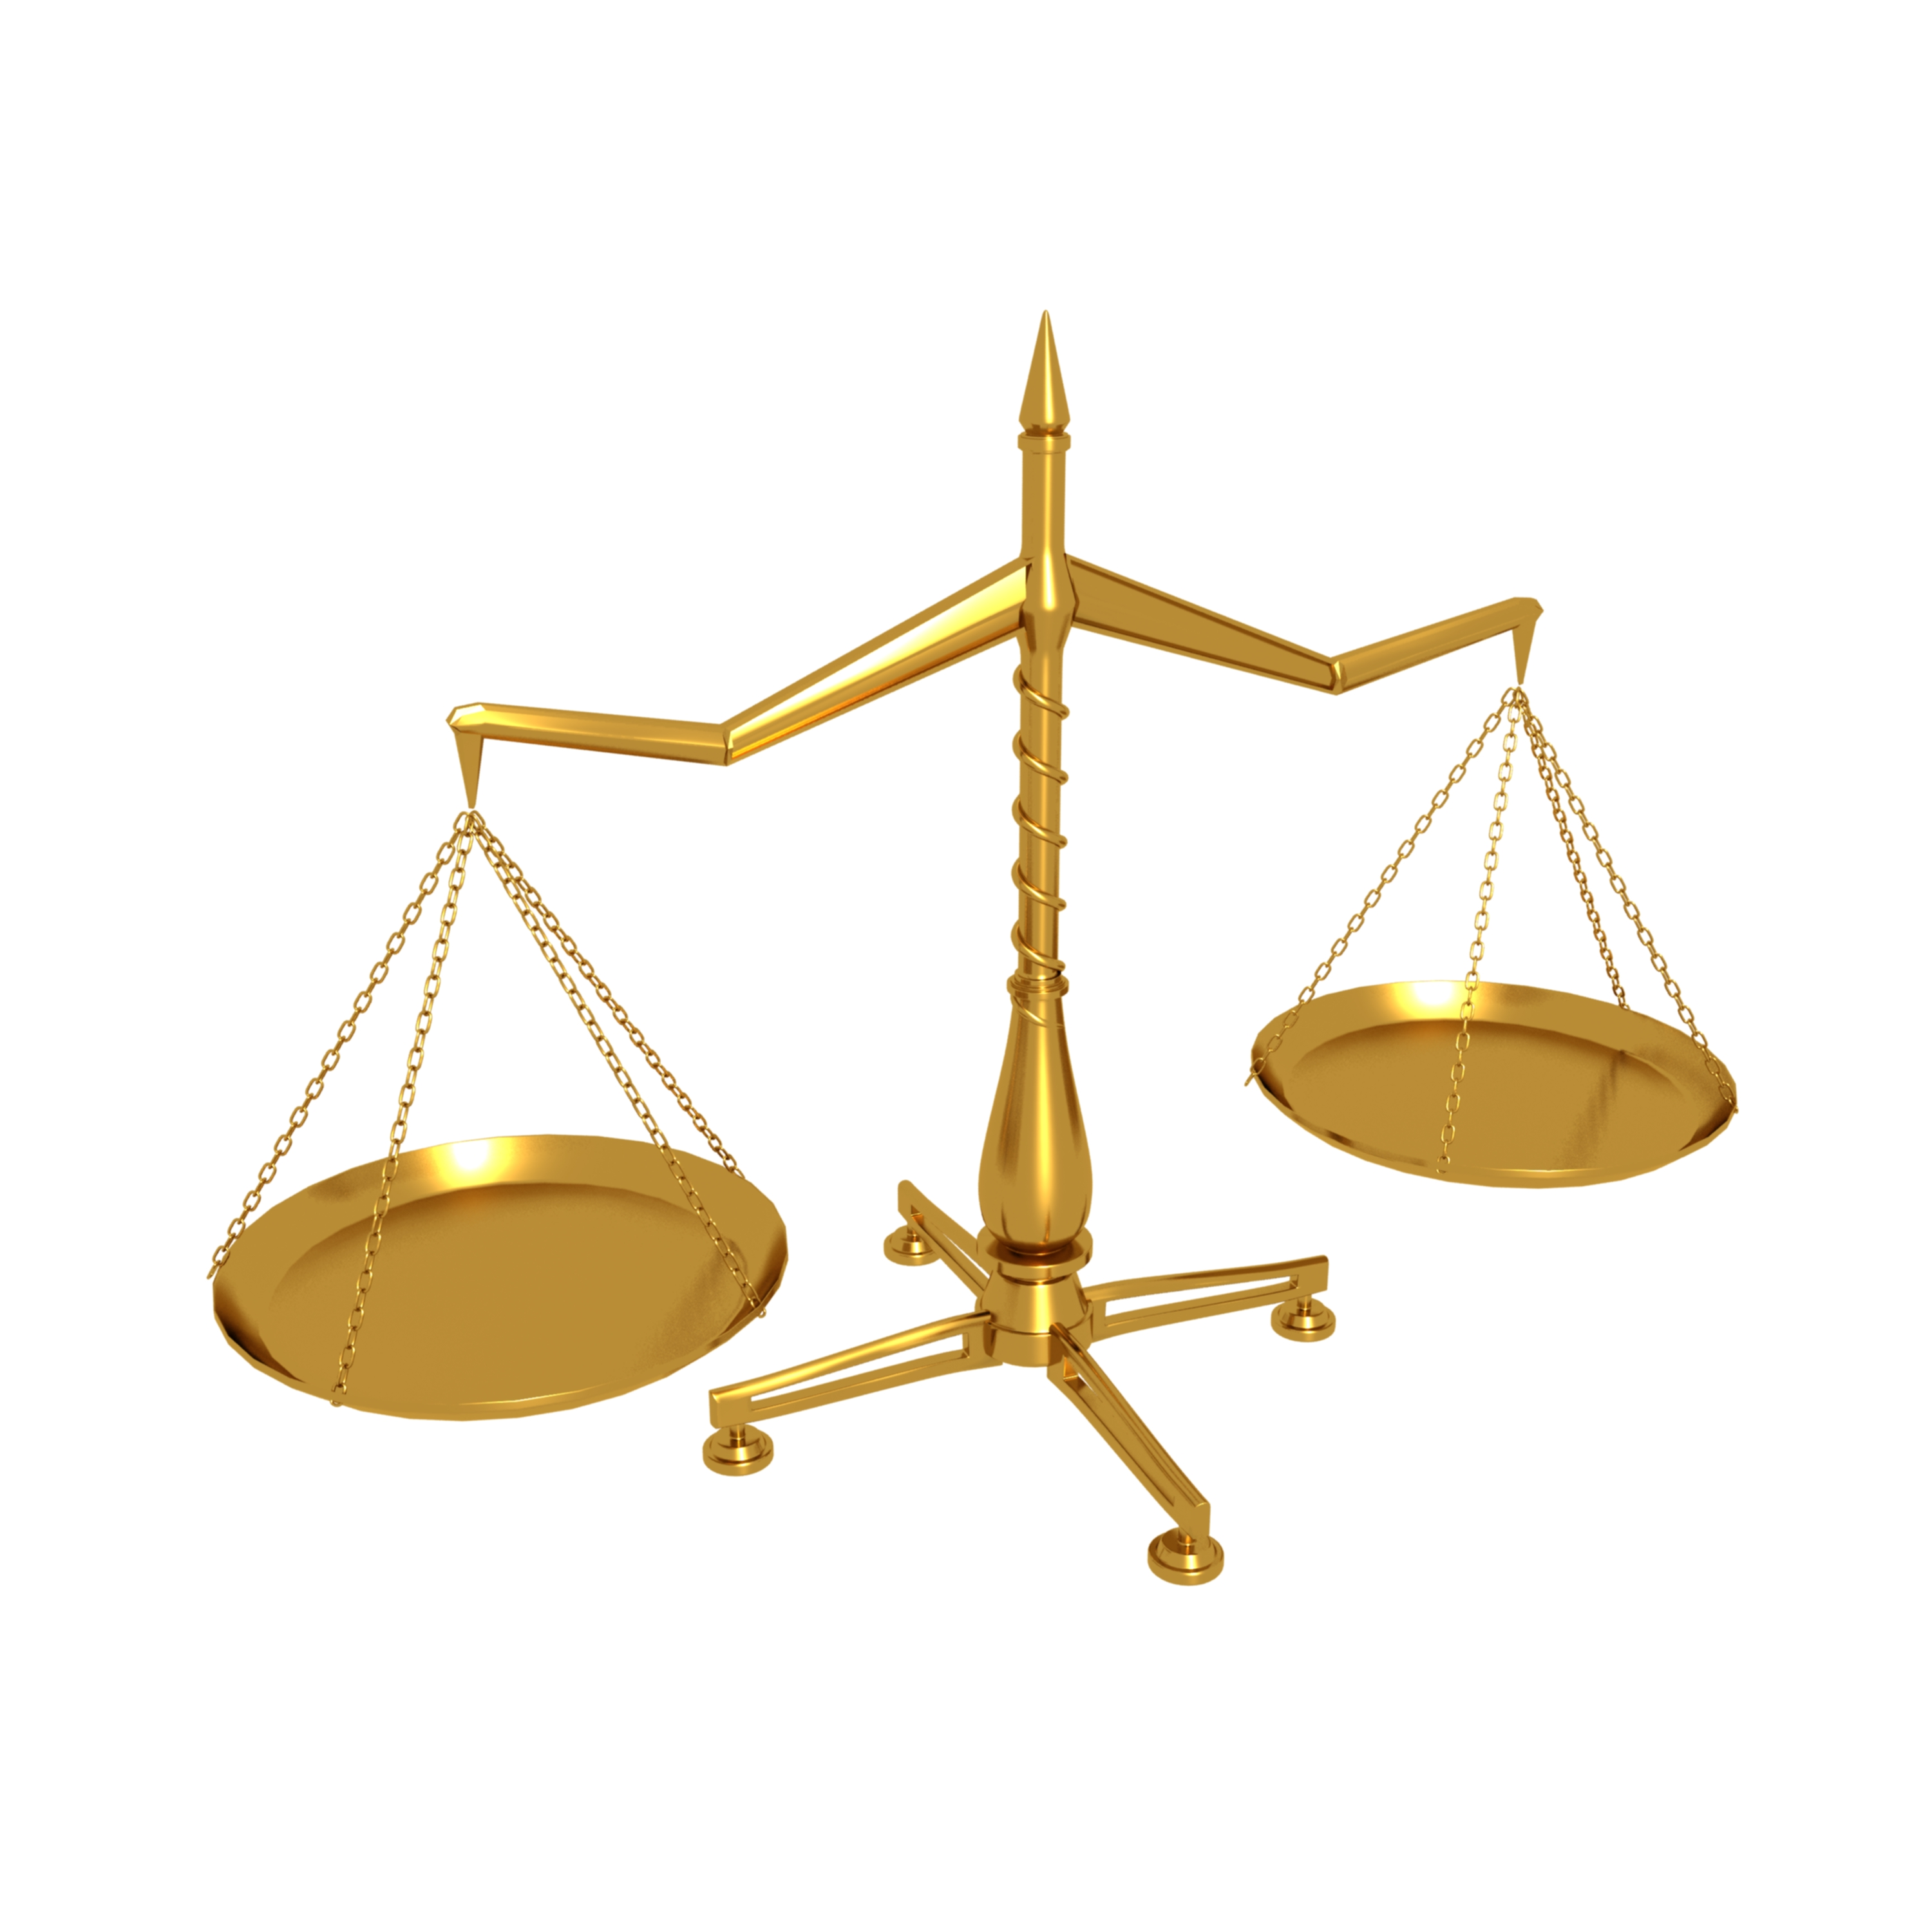 Balance Scale Picture   Clipart Best